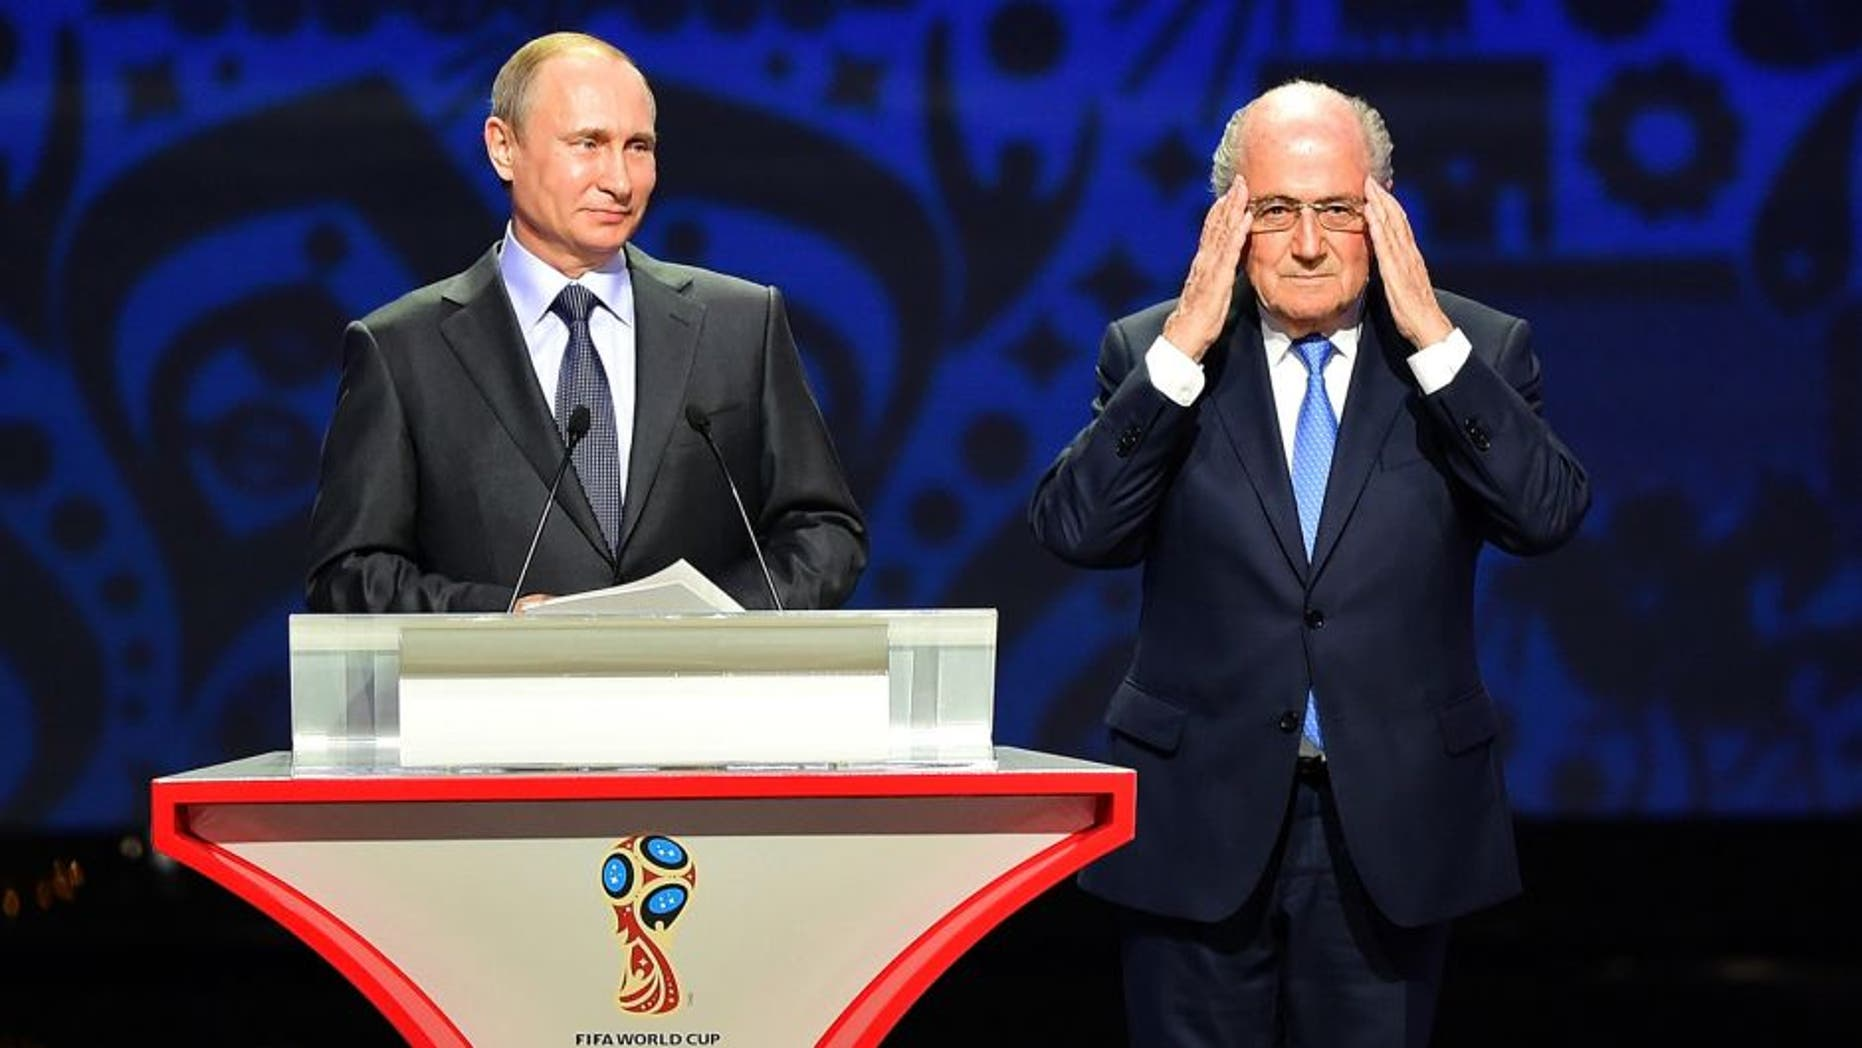 SAINT PETERSBURG, RUSSIA - JULY 25: Vladimir Putin, President of Russia and FIFA President Joseph S. Blatter speak during the Preliminary Draw of the 2018 FIFA World Cup in Russia at The Konstantin Palace on July 25, 2015 in Saint Petersburg, Russia. (Photo by Shaun Botterill/Getty Images)